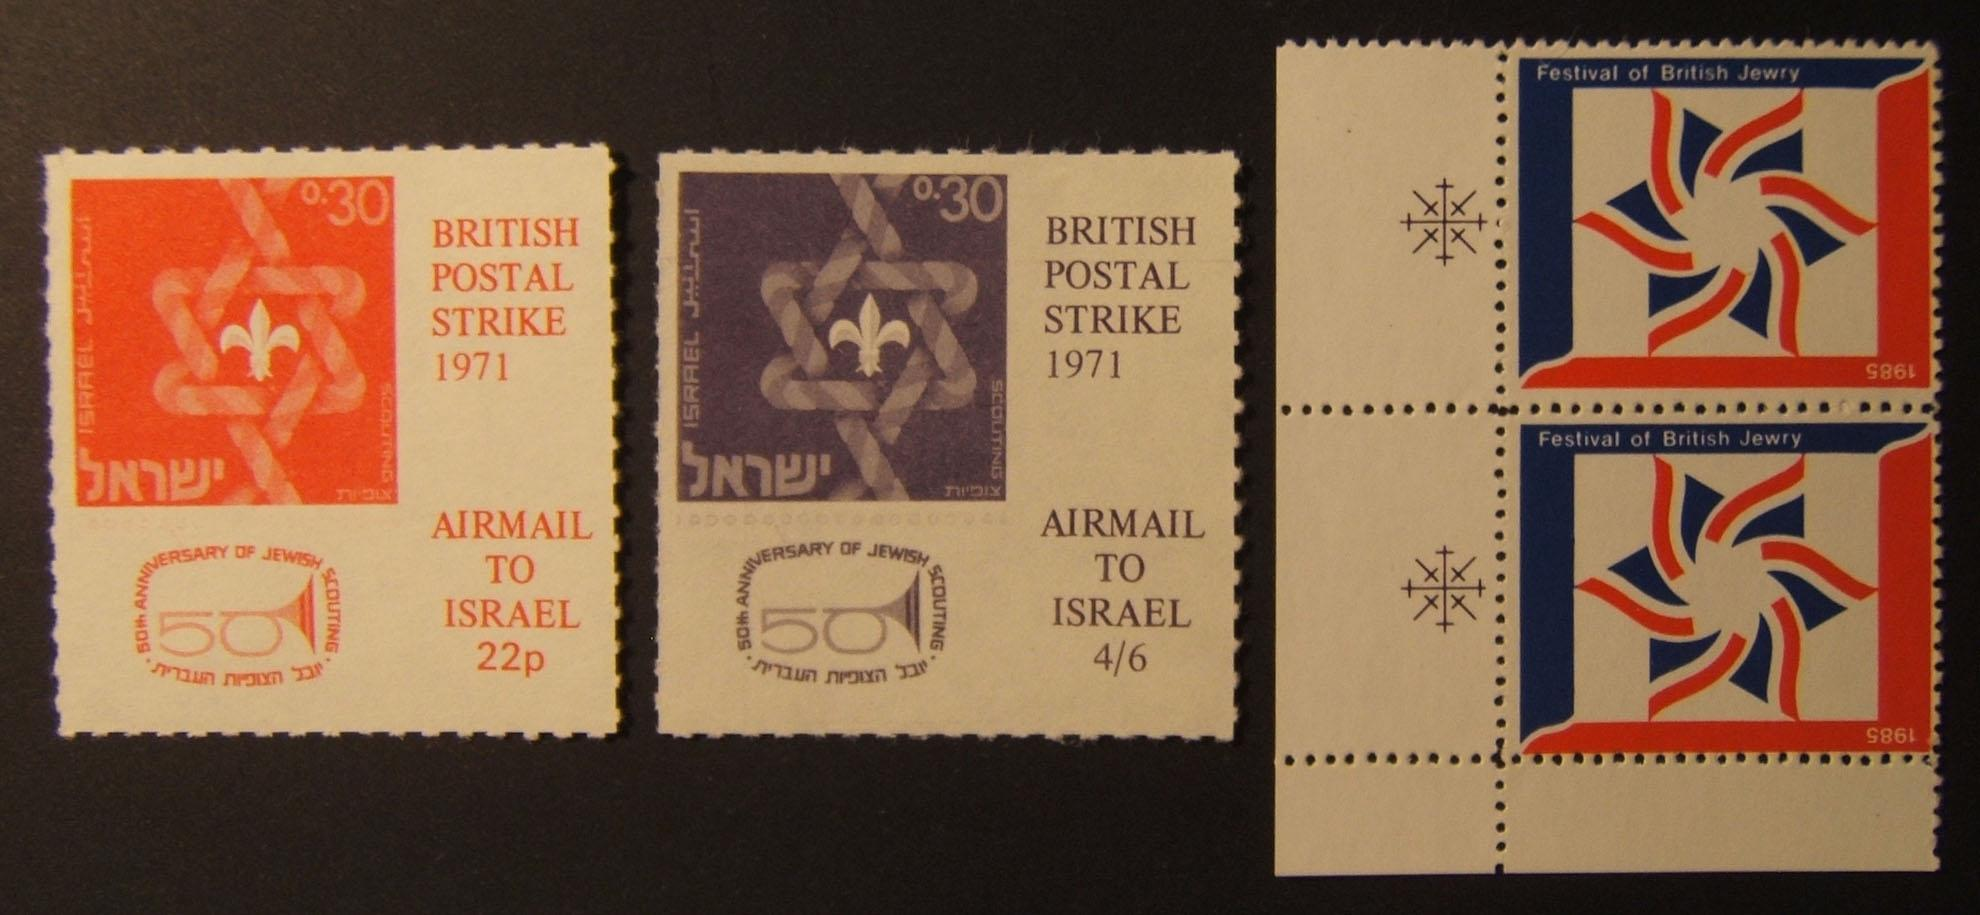 UK: 'Festival British Jewry' x2 blk & postal strike airmail to Israel